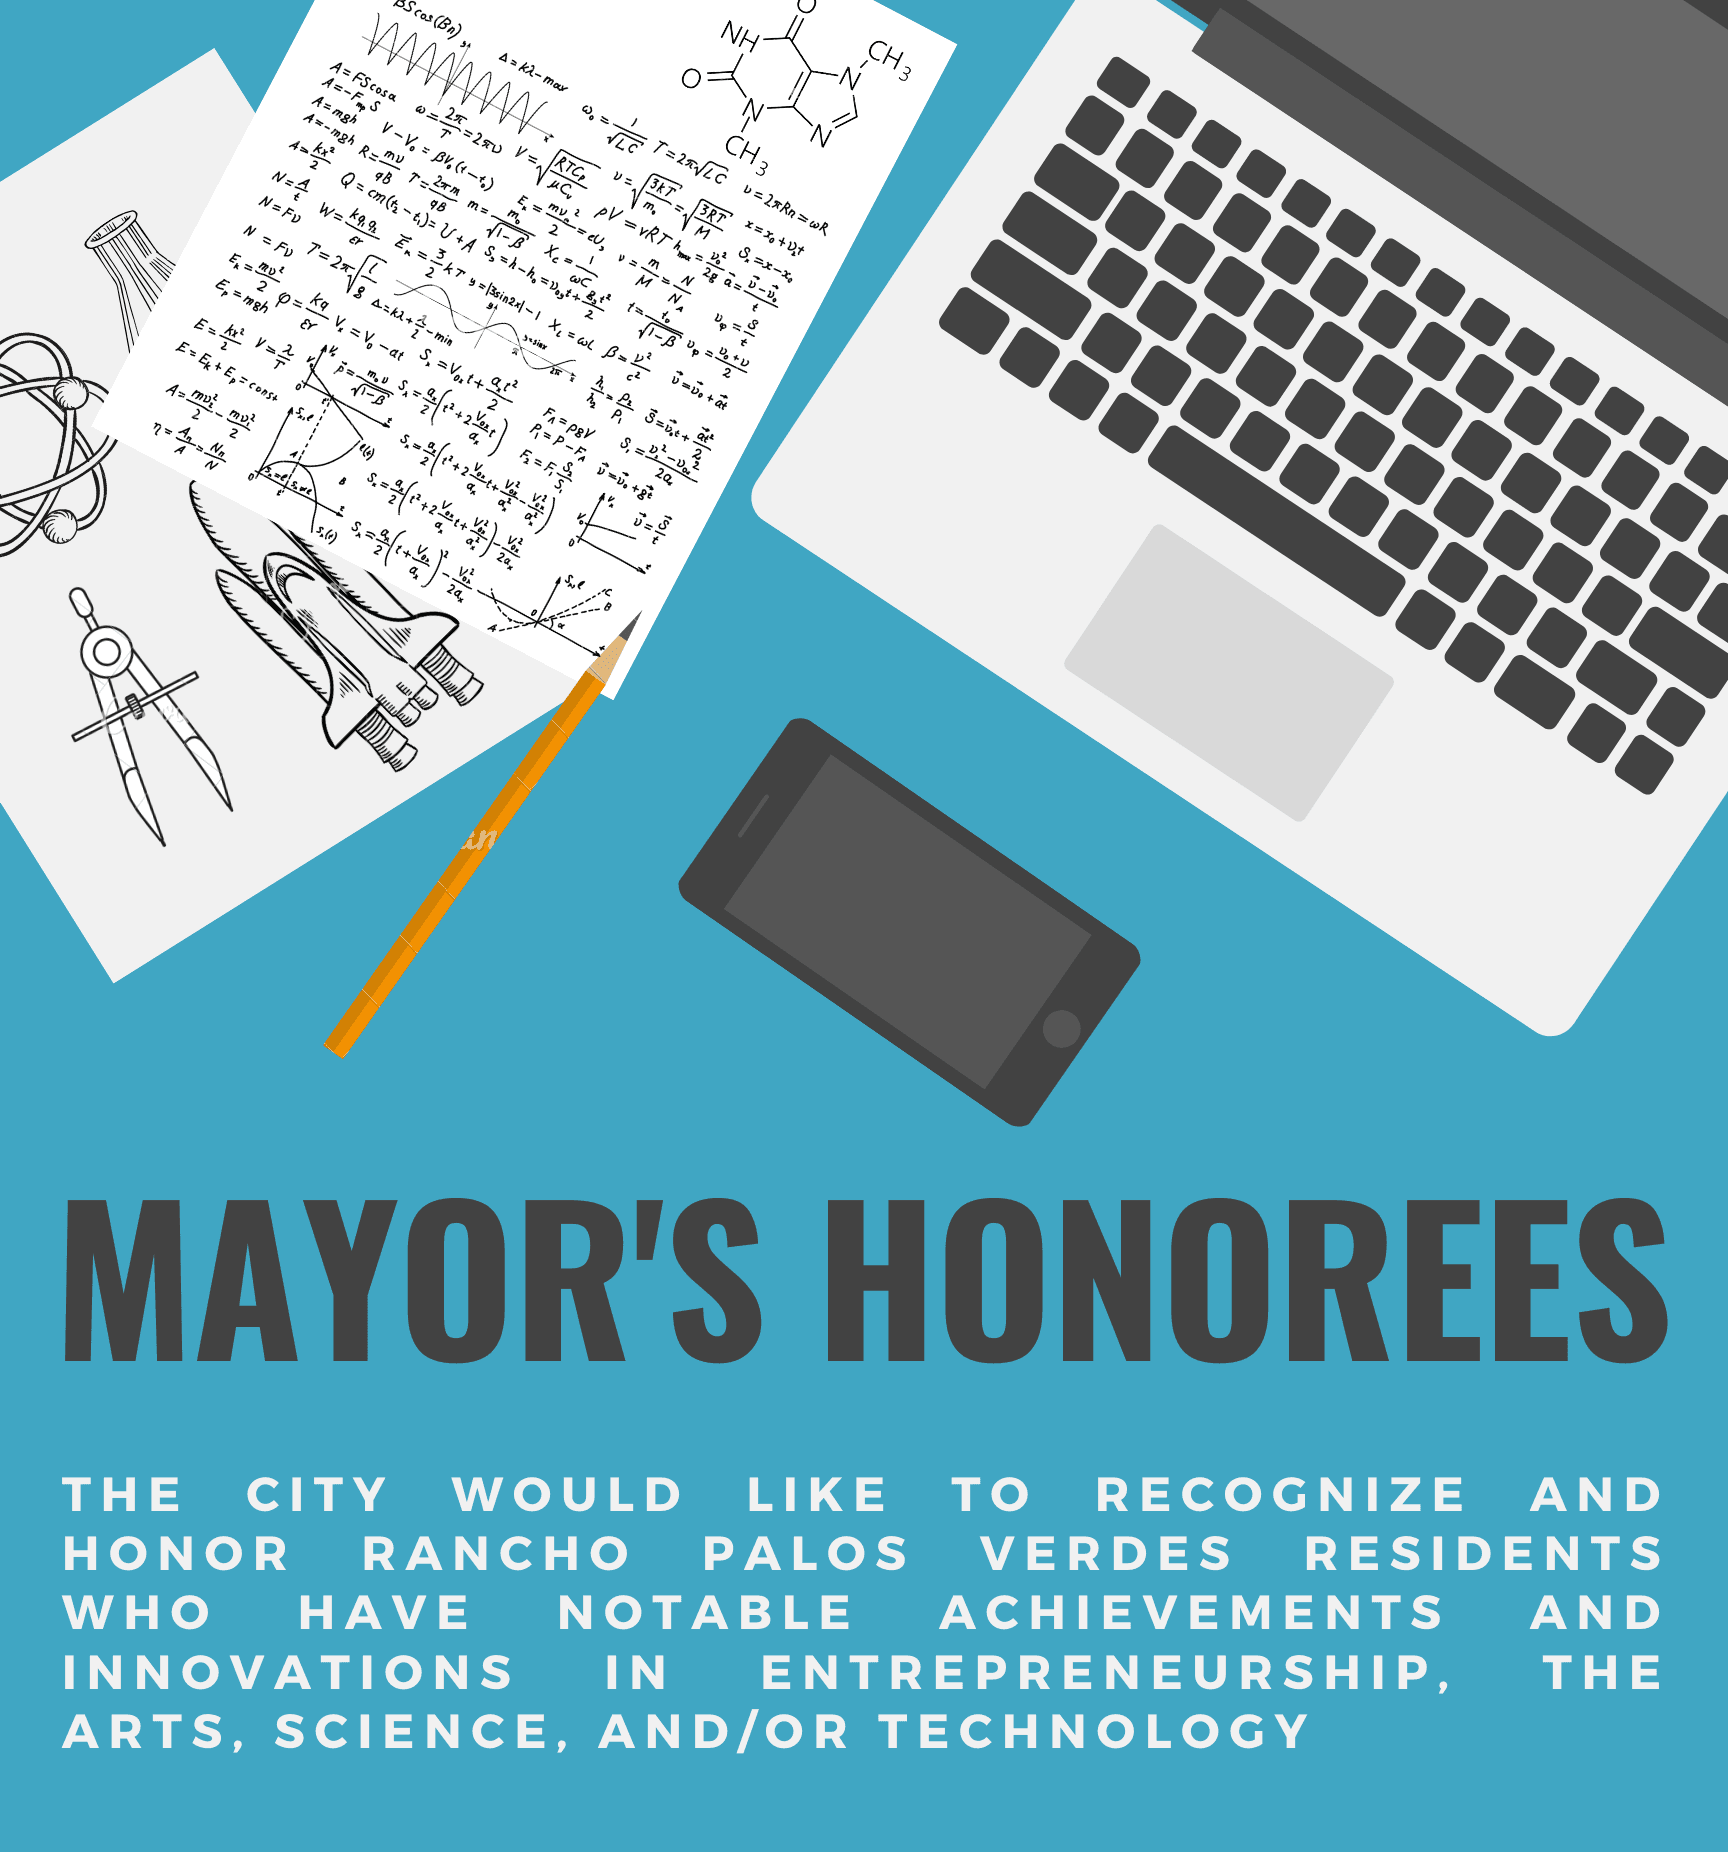 Mayor's Honoree